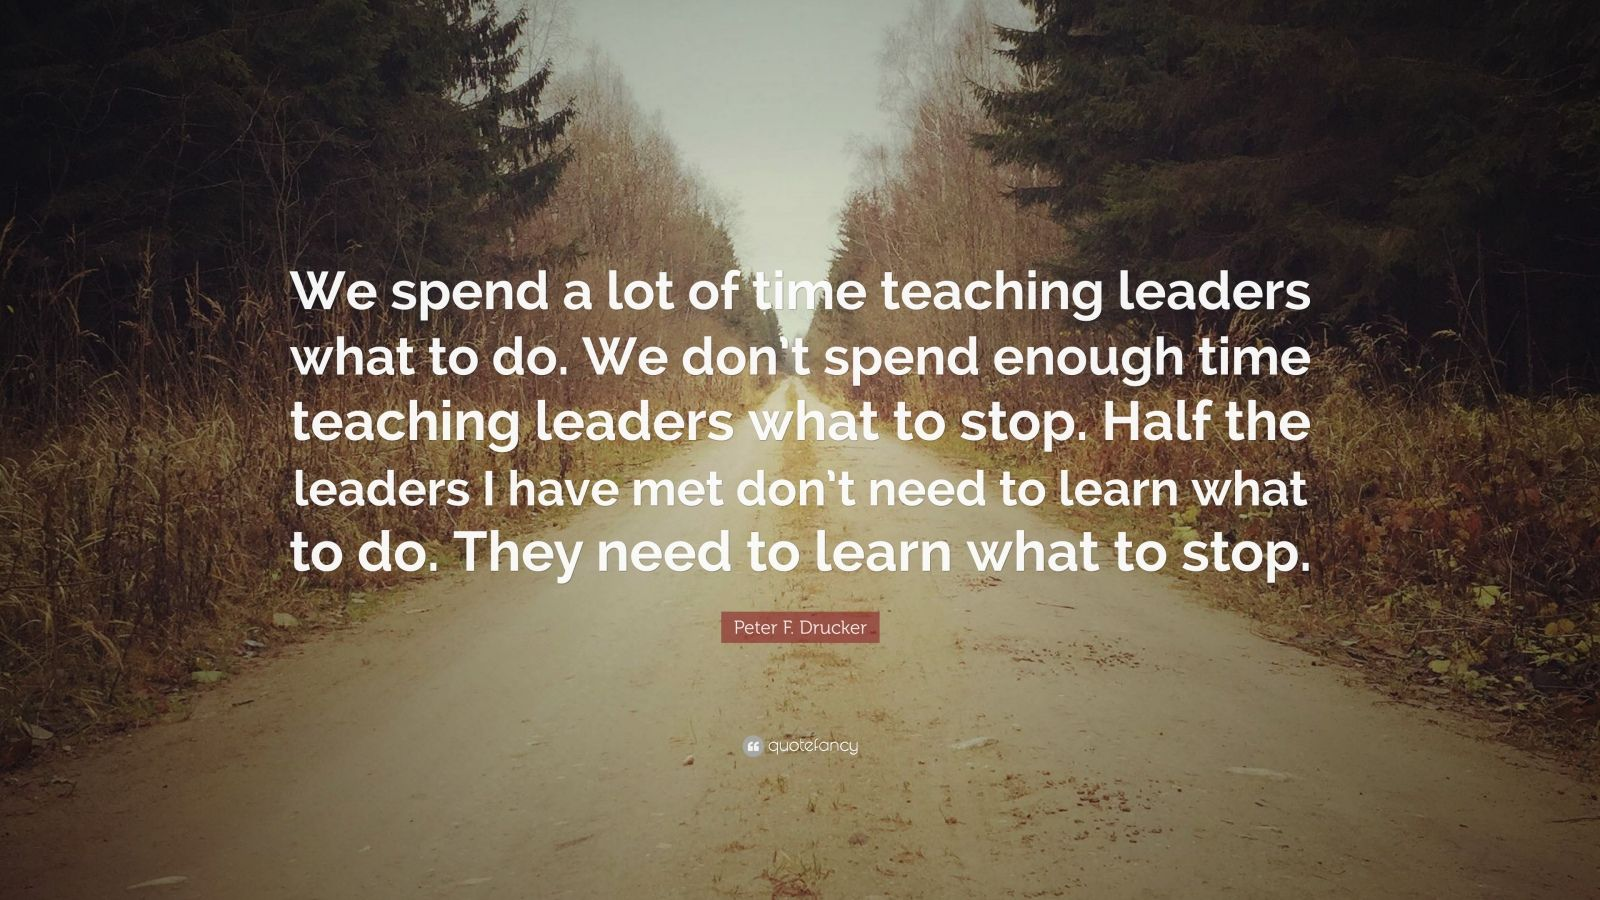 "Peter F. Drucker Quote: ""We spend a lot of time teaching leaders what to do. We don't spend enough time teaching leaders what to stop. Half the leaders I have met don't need to learn what to do. They need to learn what to stop."""